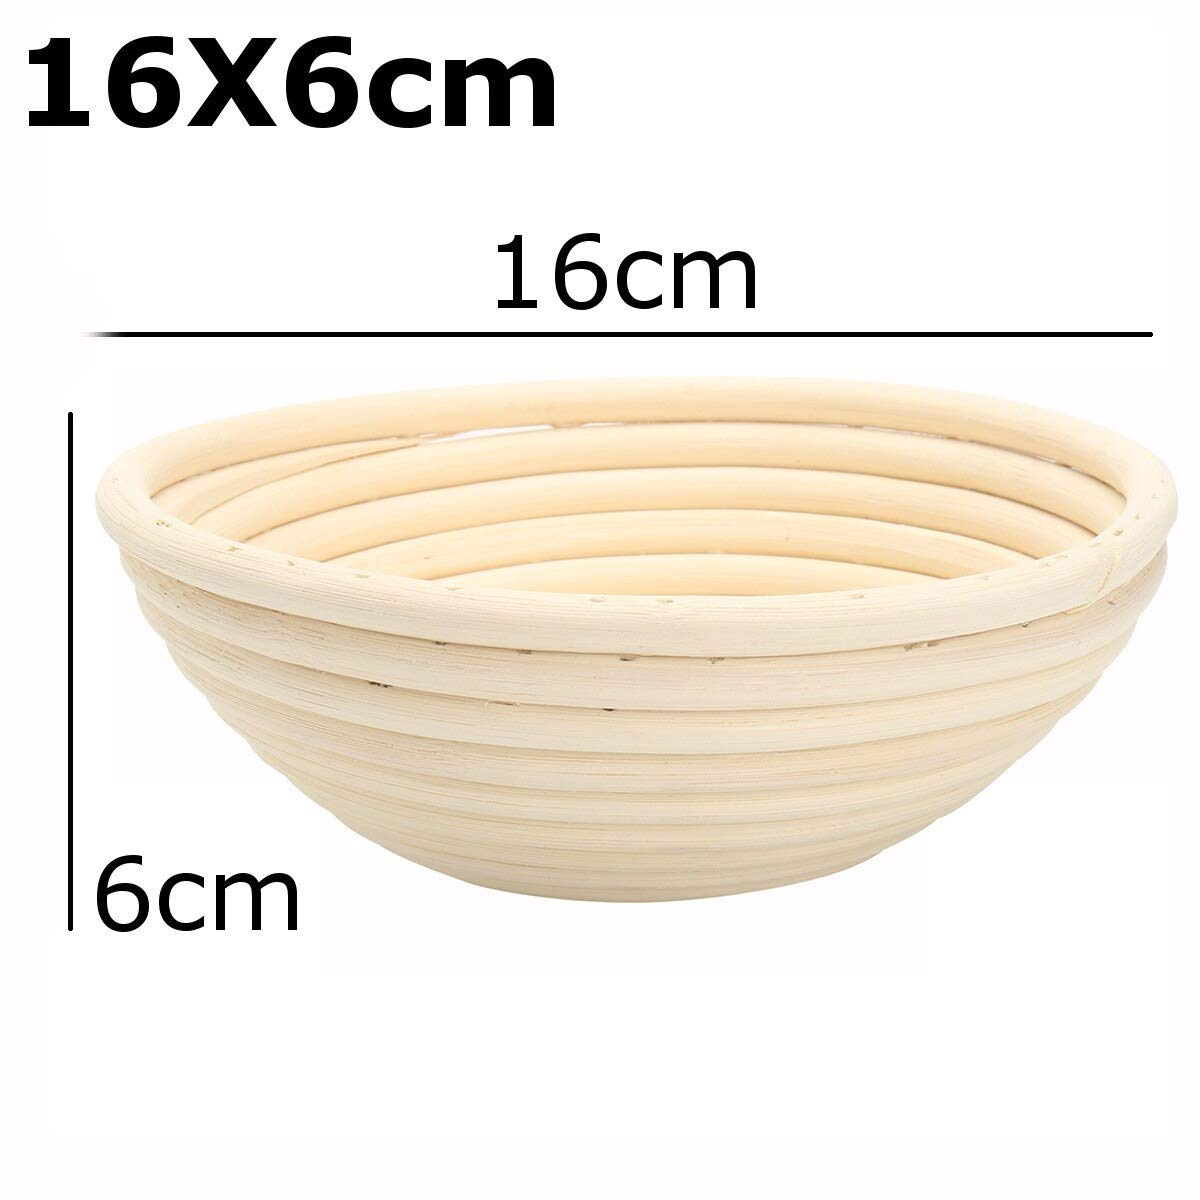 Best Quality - Storage Baskets - Bread Basket Banneton Brotform Rattan Proofing Basket Liner Round Oval Fruit Tray Dough Food Storage Container Organizer Basket - by GTIN - 1 PCs